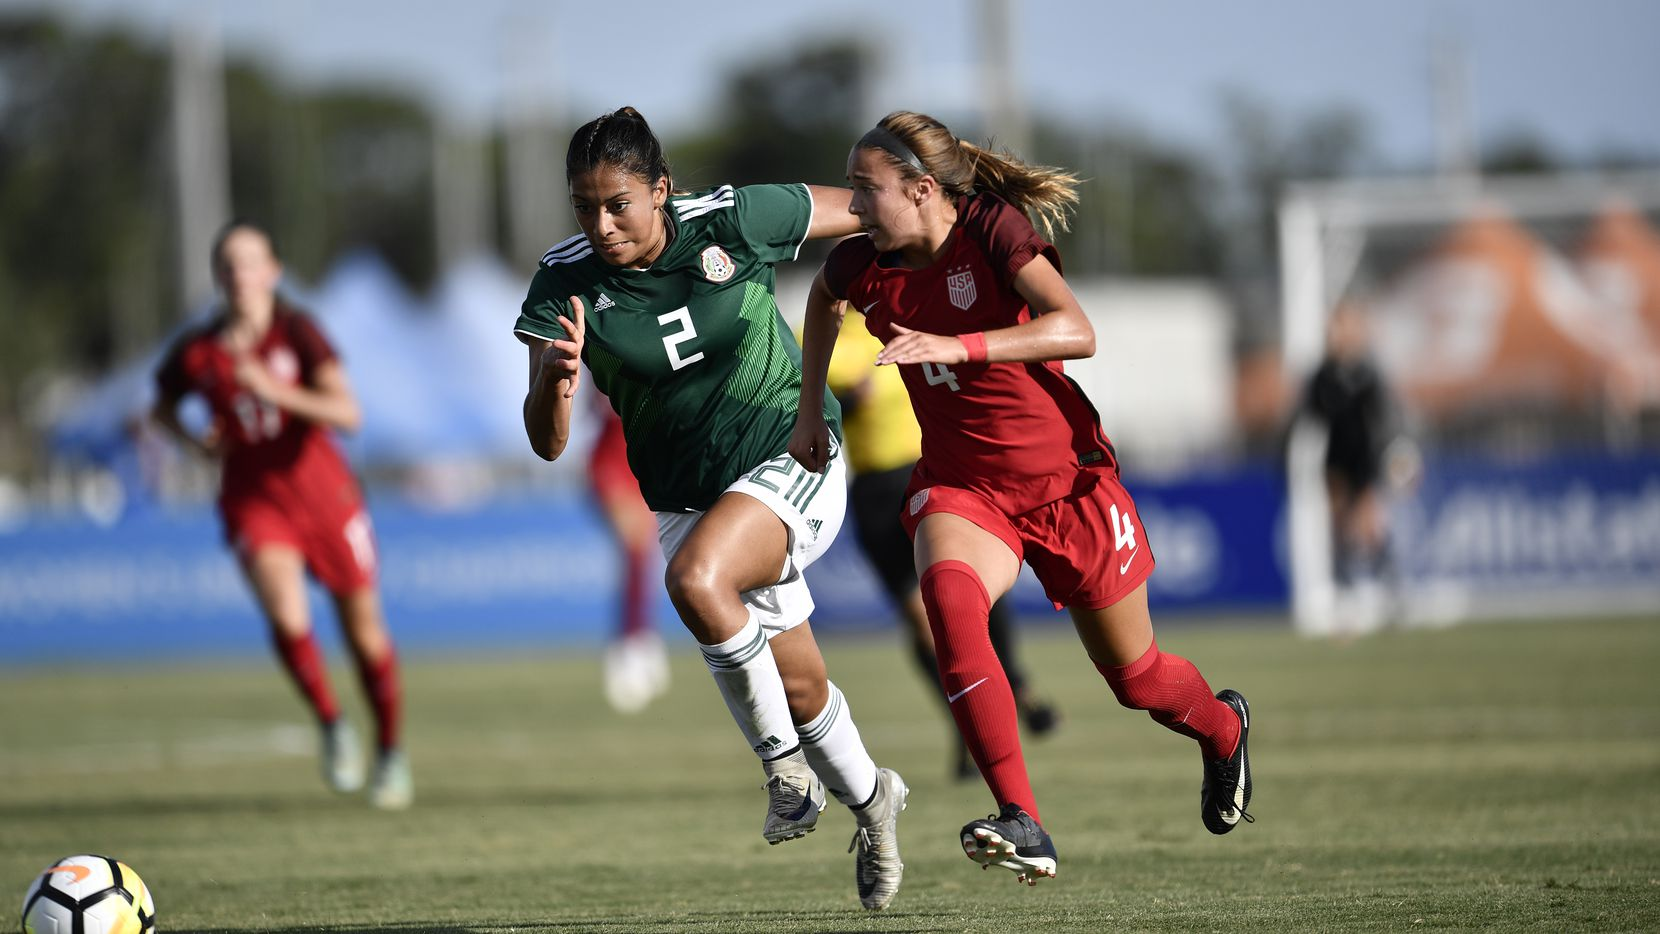 June 12, 2018 (Bradenton, FL) - Mexico's Reyna Reyes contests a loose ball with the USA's Talia DellaPeruta. The US would win the Concacaf Women's U17 Championship final 3-2.